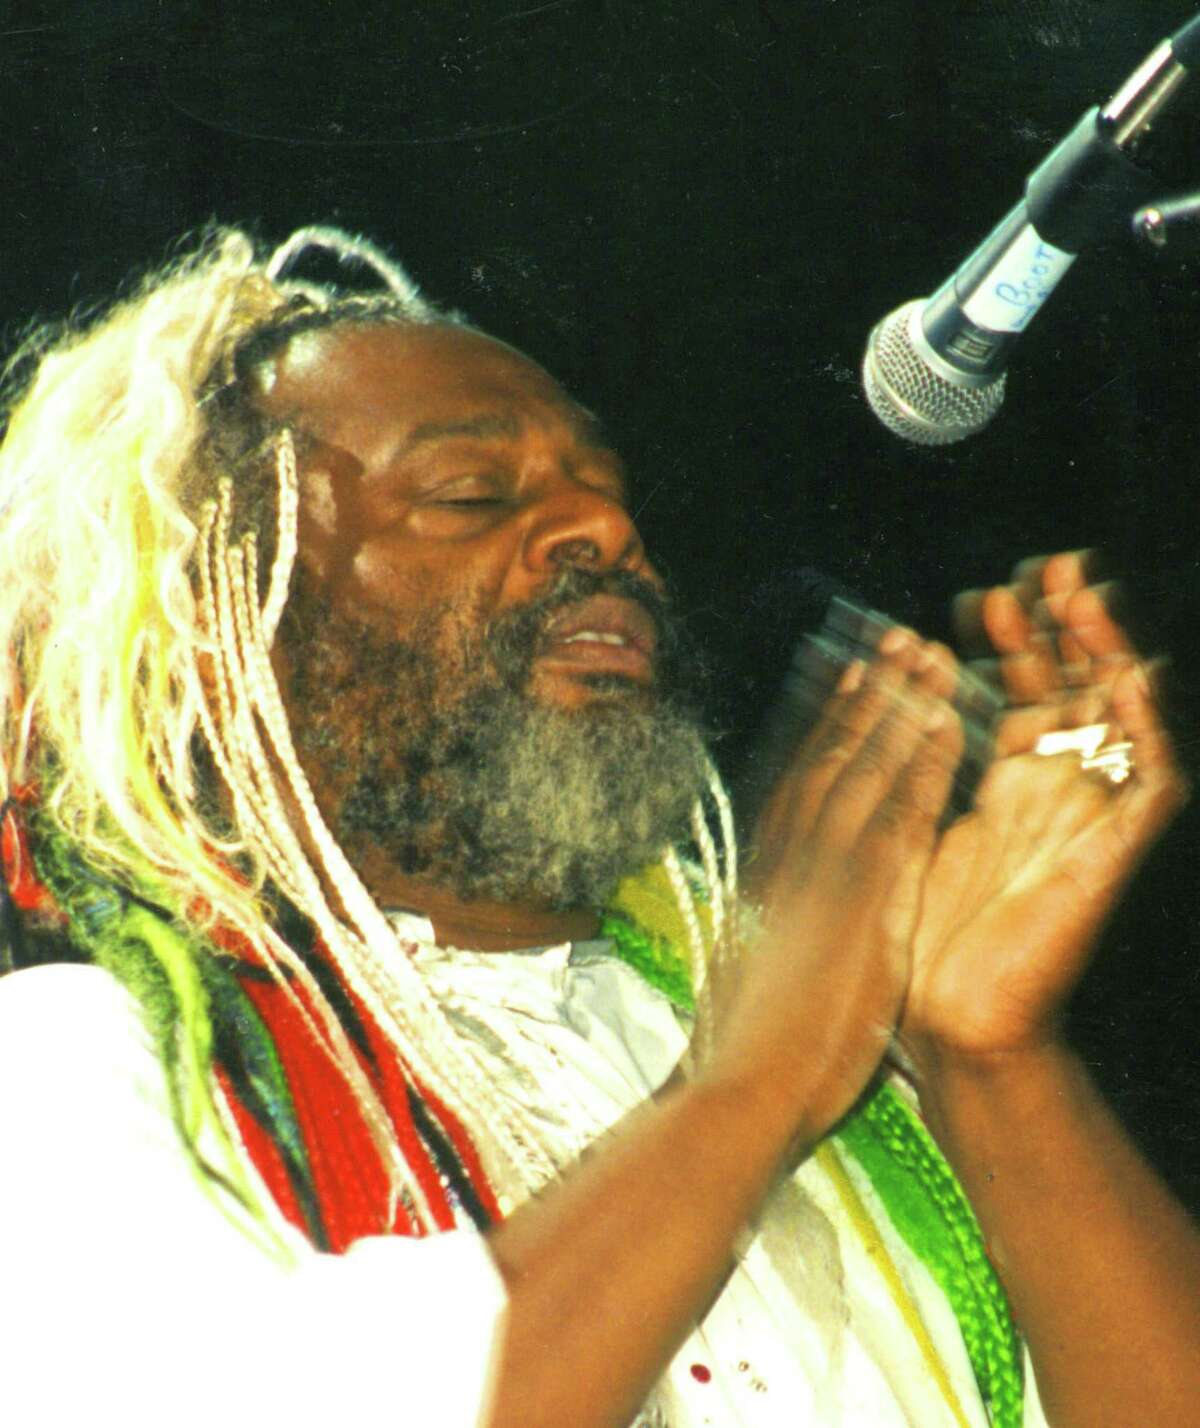 George Clinton, a 1997 Rock and Roll Hall of Fame inductee, will perform in the free Hamden Arts Concert Series on July 7